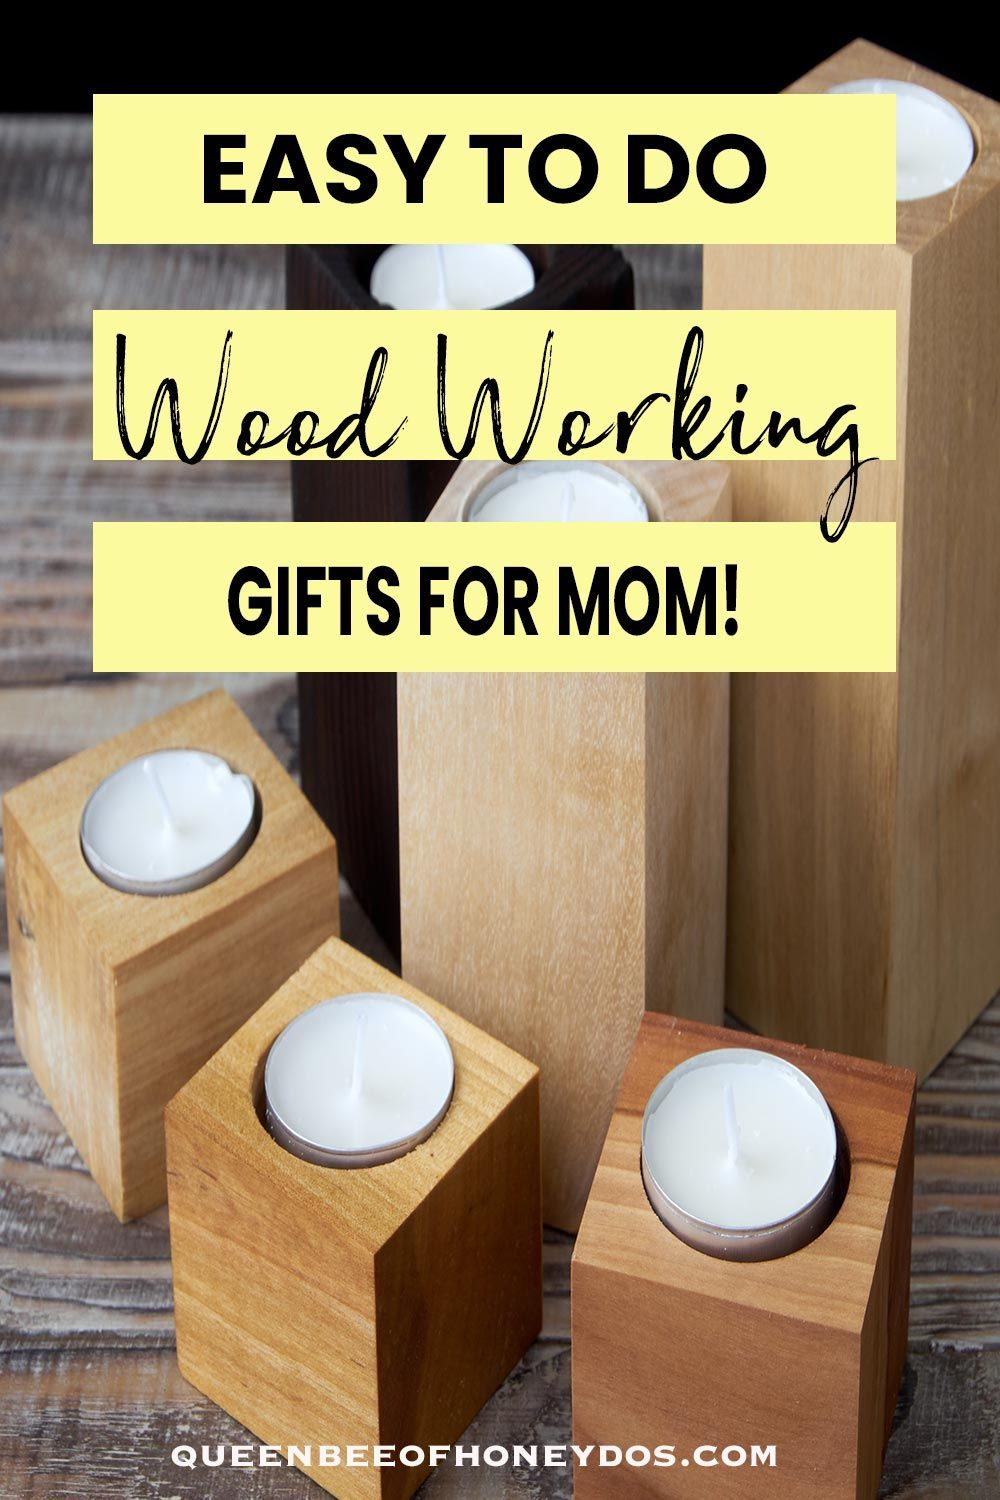 Easy Woodworking Projects For Mother S Day Queen Bee Of Honey Dos Woodworking Gift Ideas For Mom Easy Woodworking Projects Easy Woodworking Projects Diy